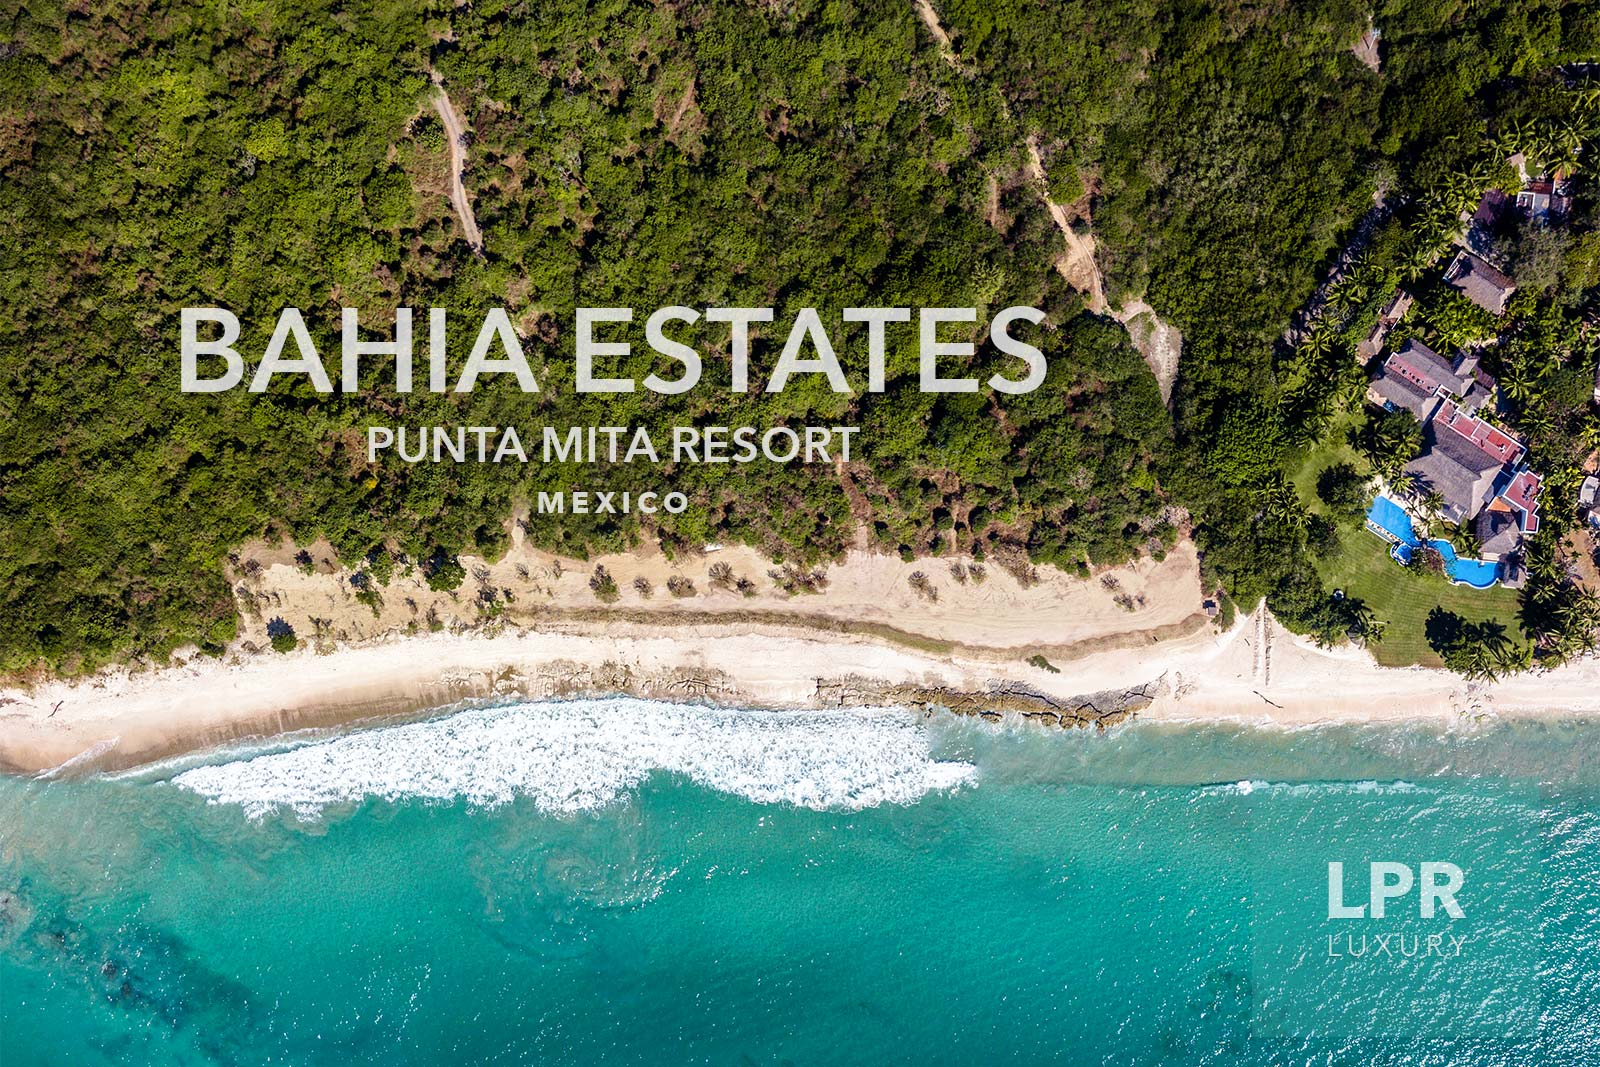 Bahia Estates at the Punta Mita Resort, Riviera Nayarit, Mexico